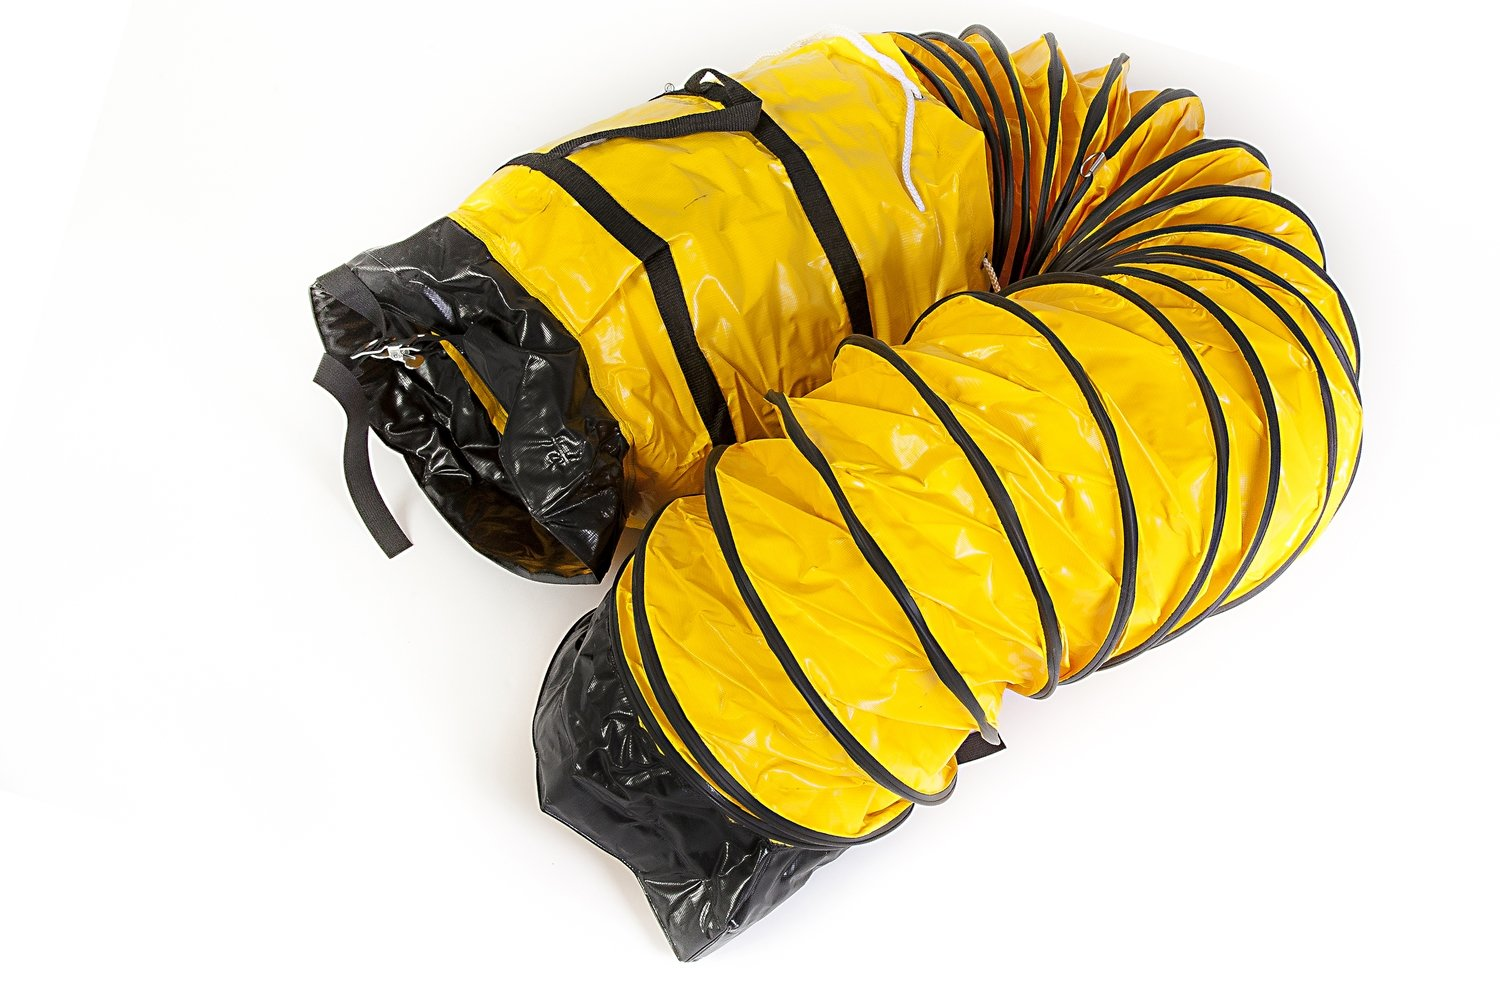 Miniveyor Air Bag Duct 200mm dia. x 7.5m long Flexible Duct with Storage Bag